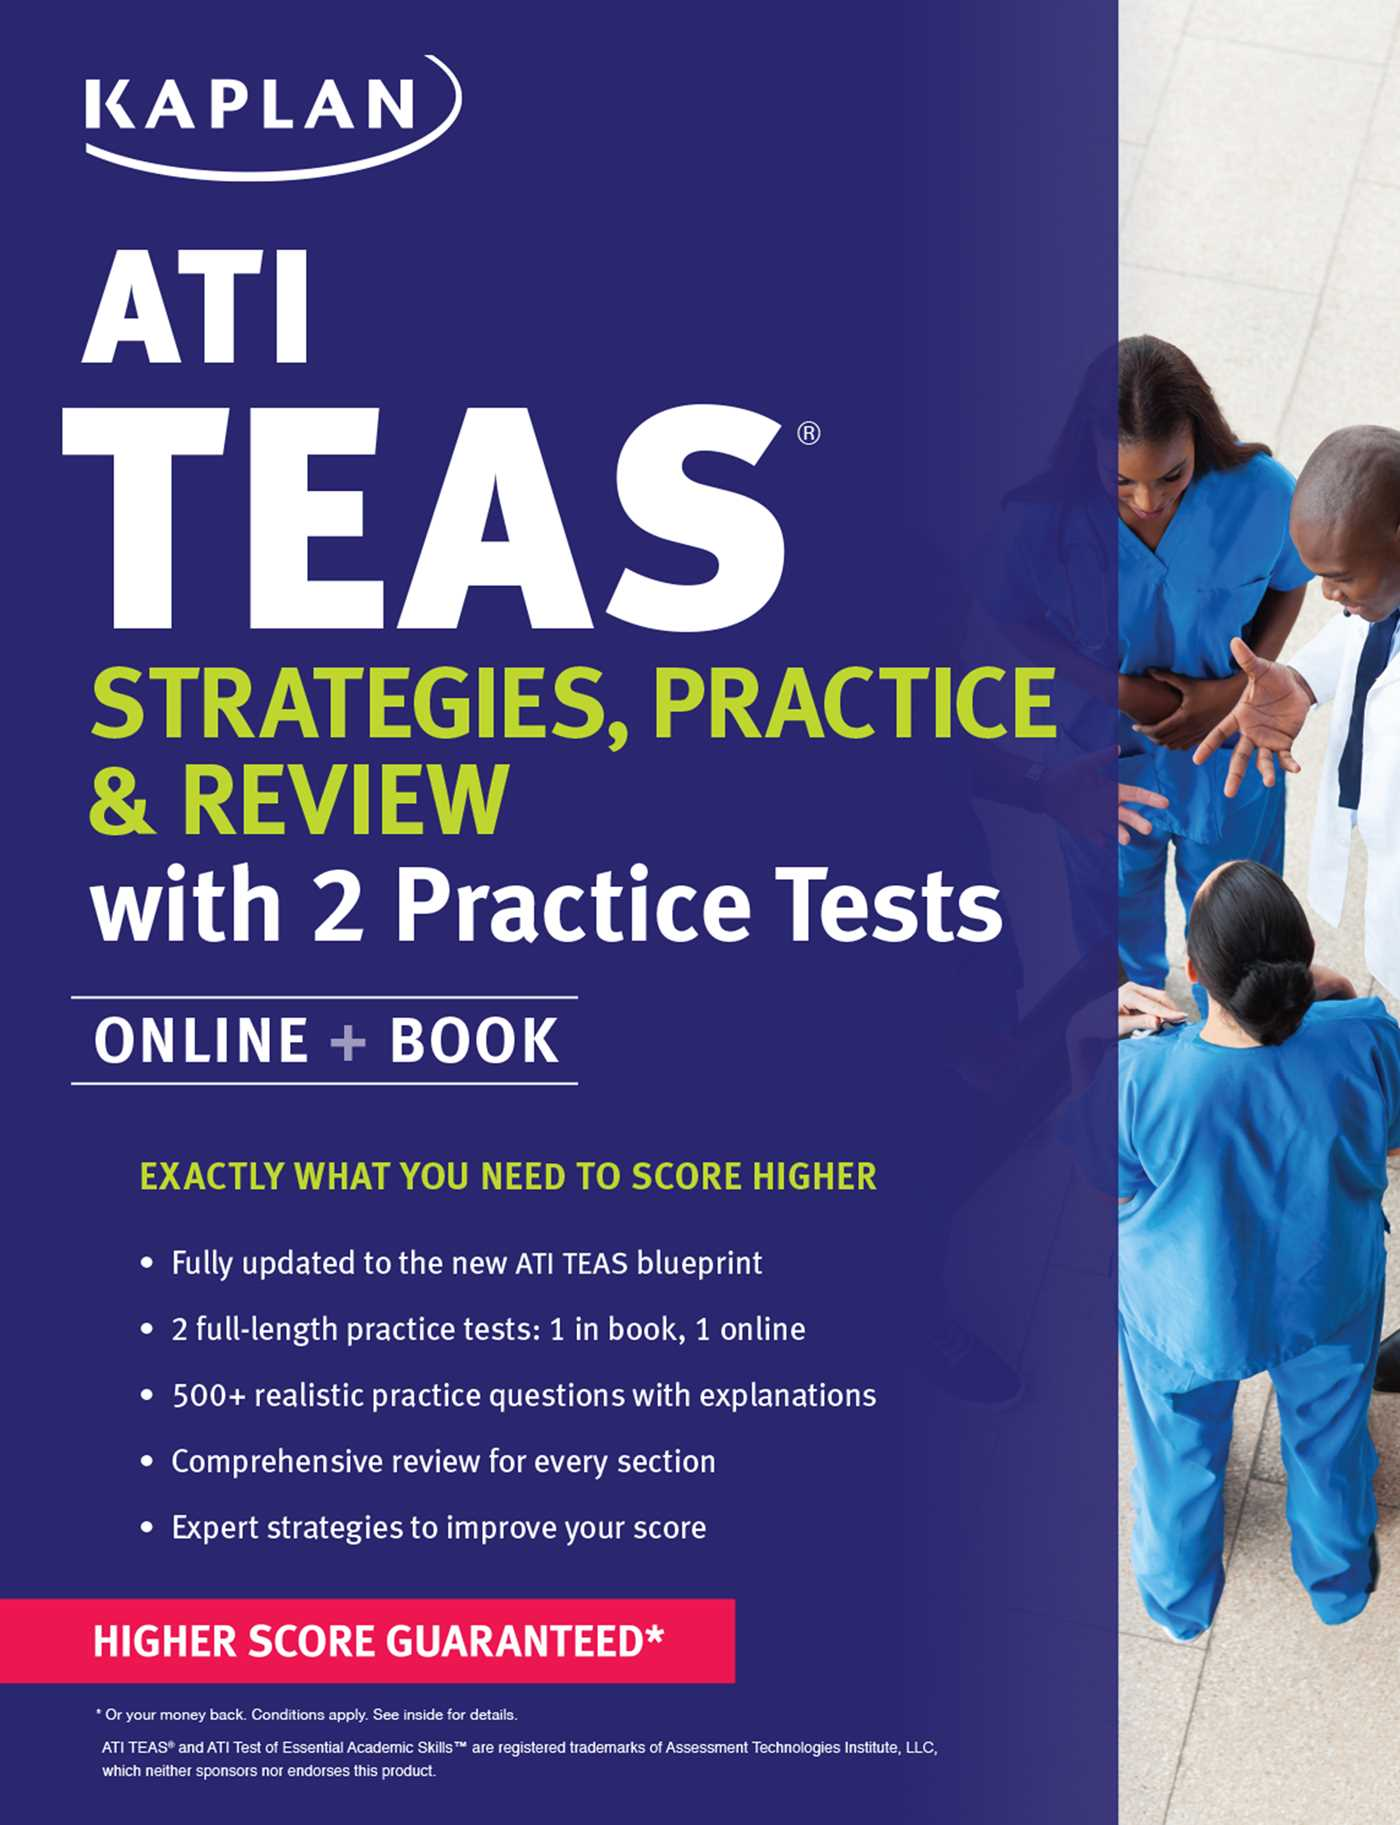 Ati teas strategies practice review with 2 practice tests book ati teas strategies practice review with 2 practice tests 9781506211152 hr malvernweather Image collections